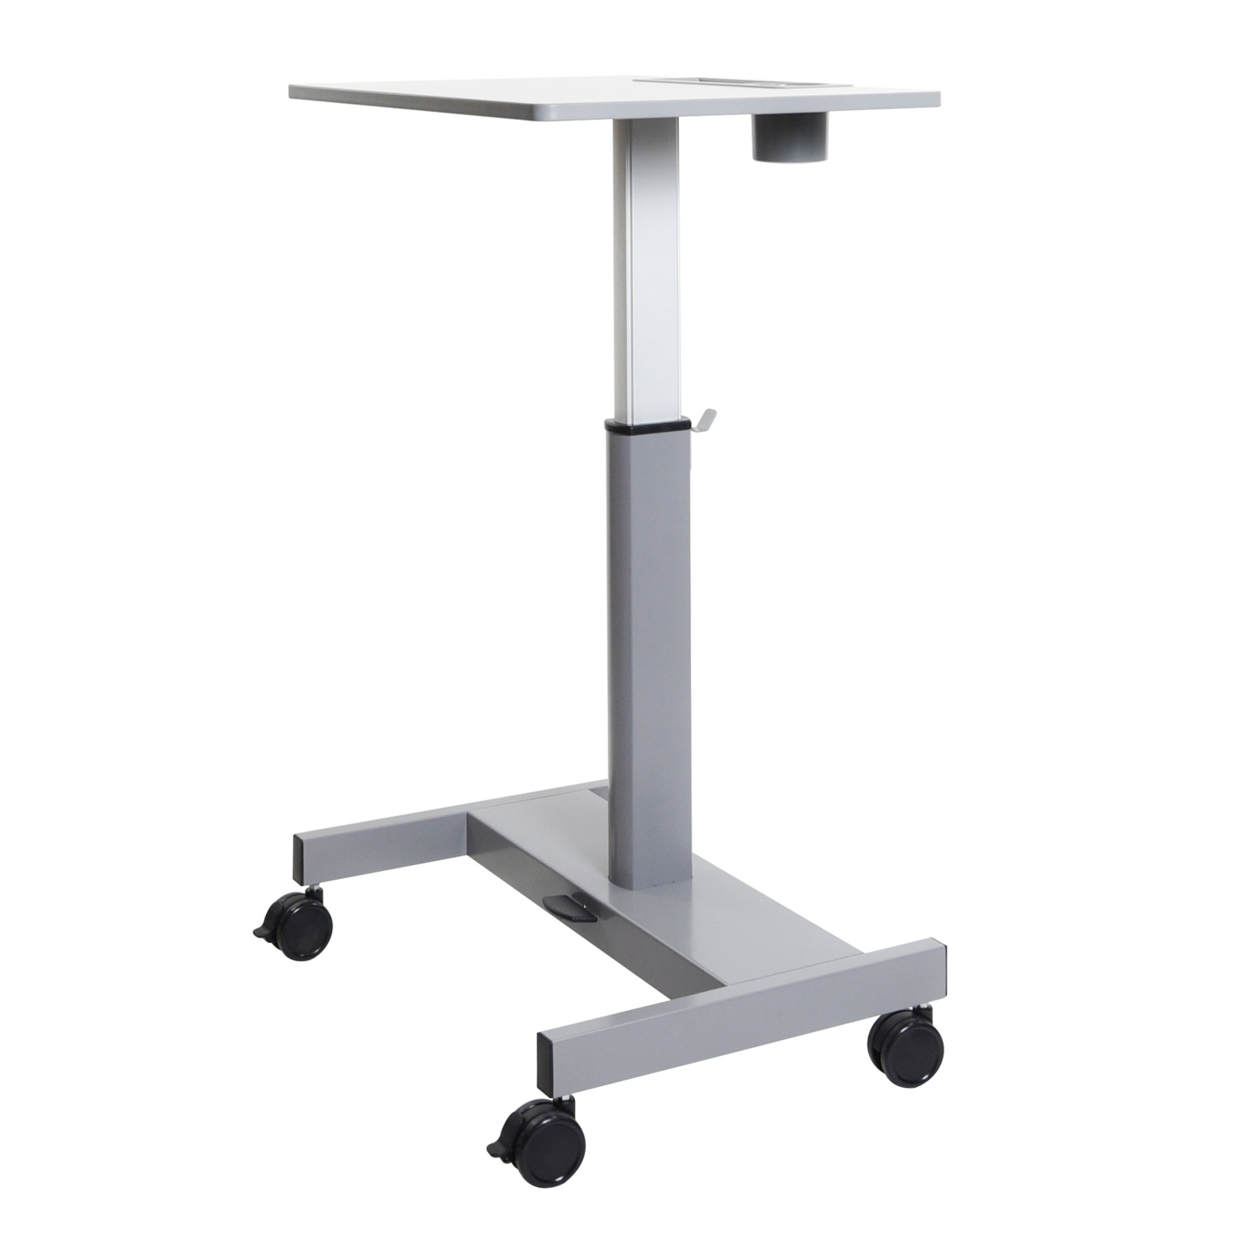 Offex OF-STUDENT-P Student Pneumatic Adjustable Height Sit/StandDesk - Light Gray/Medium Gray